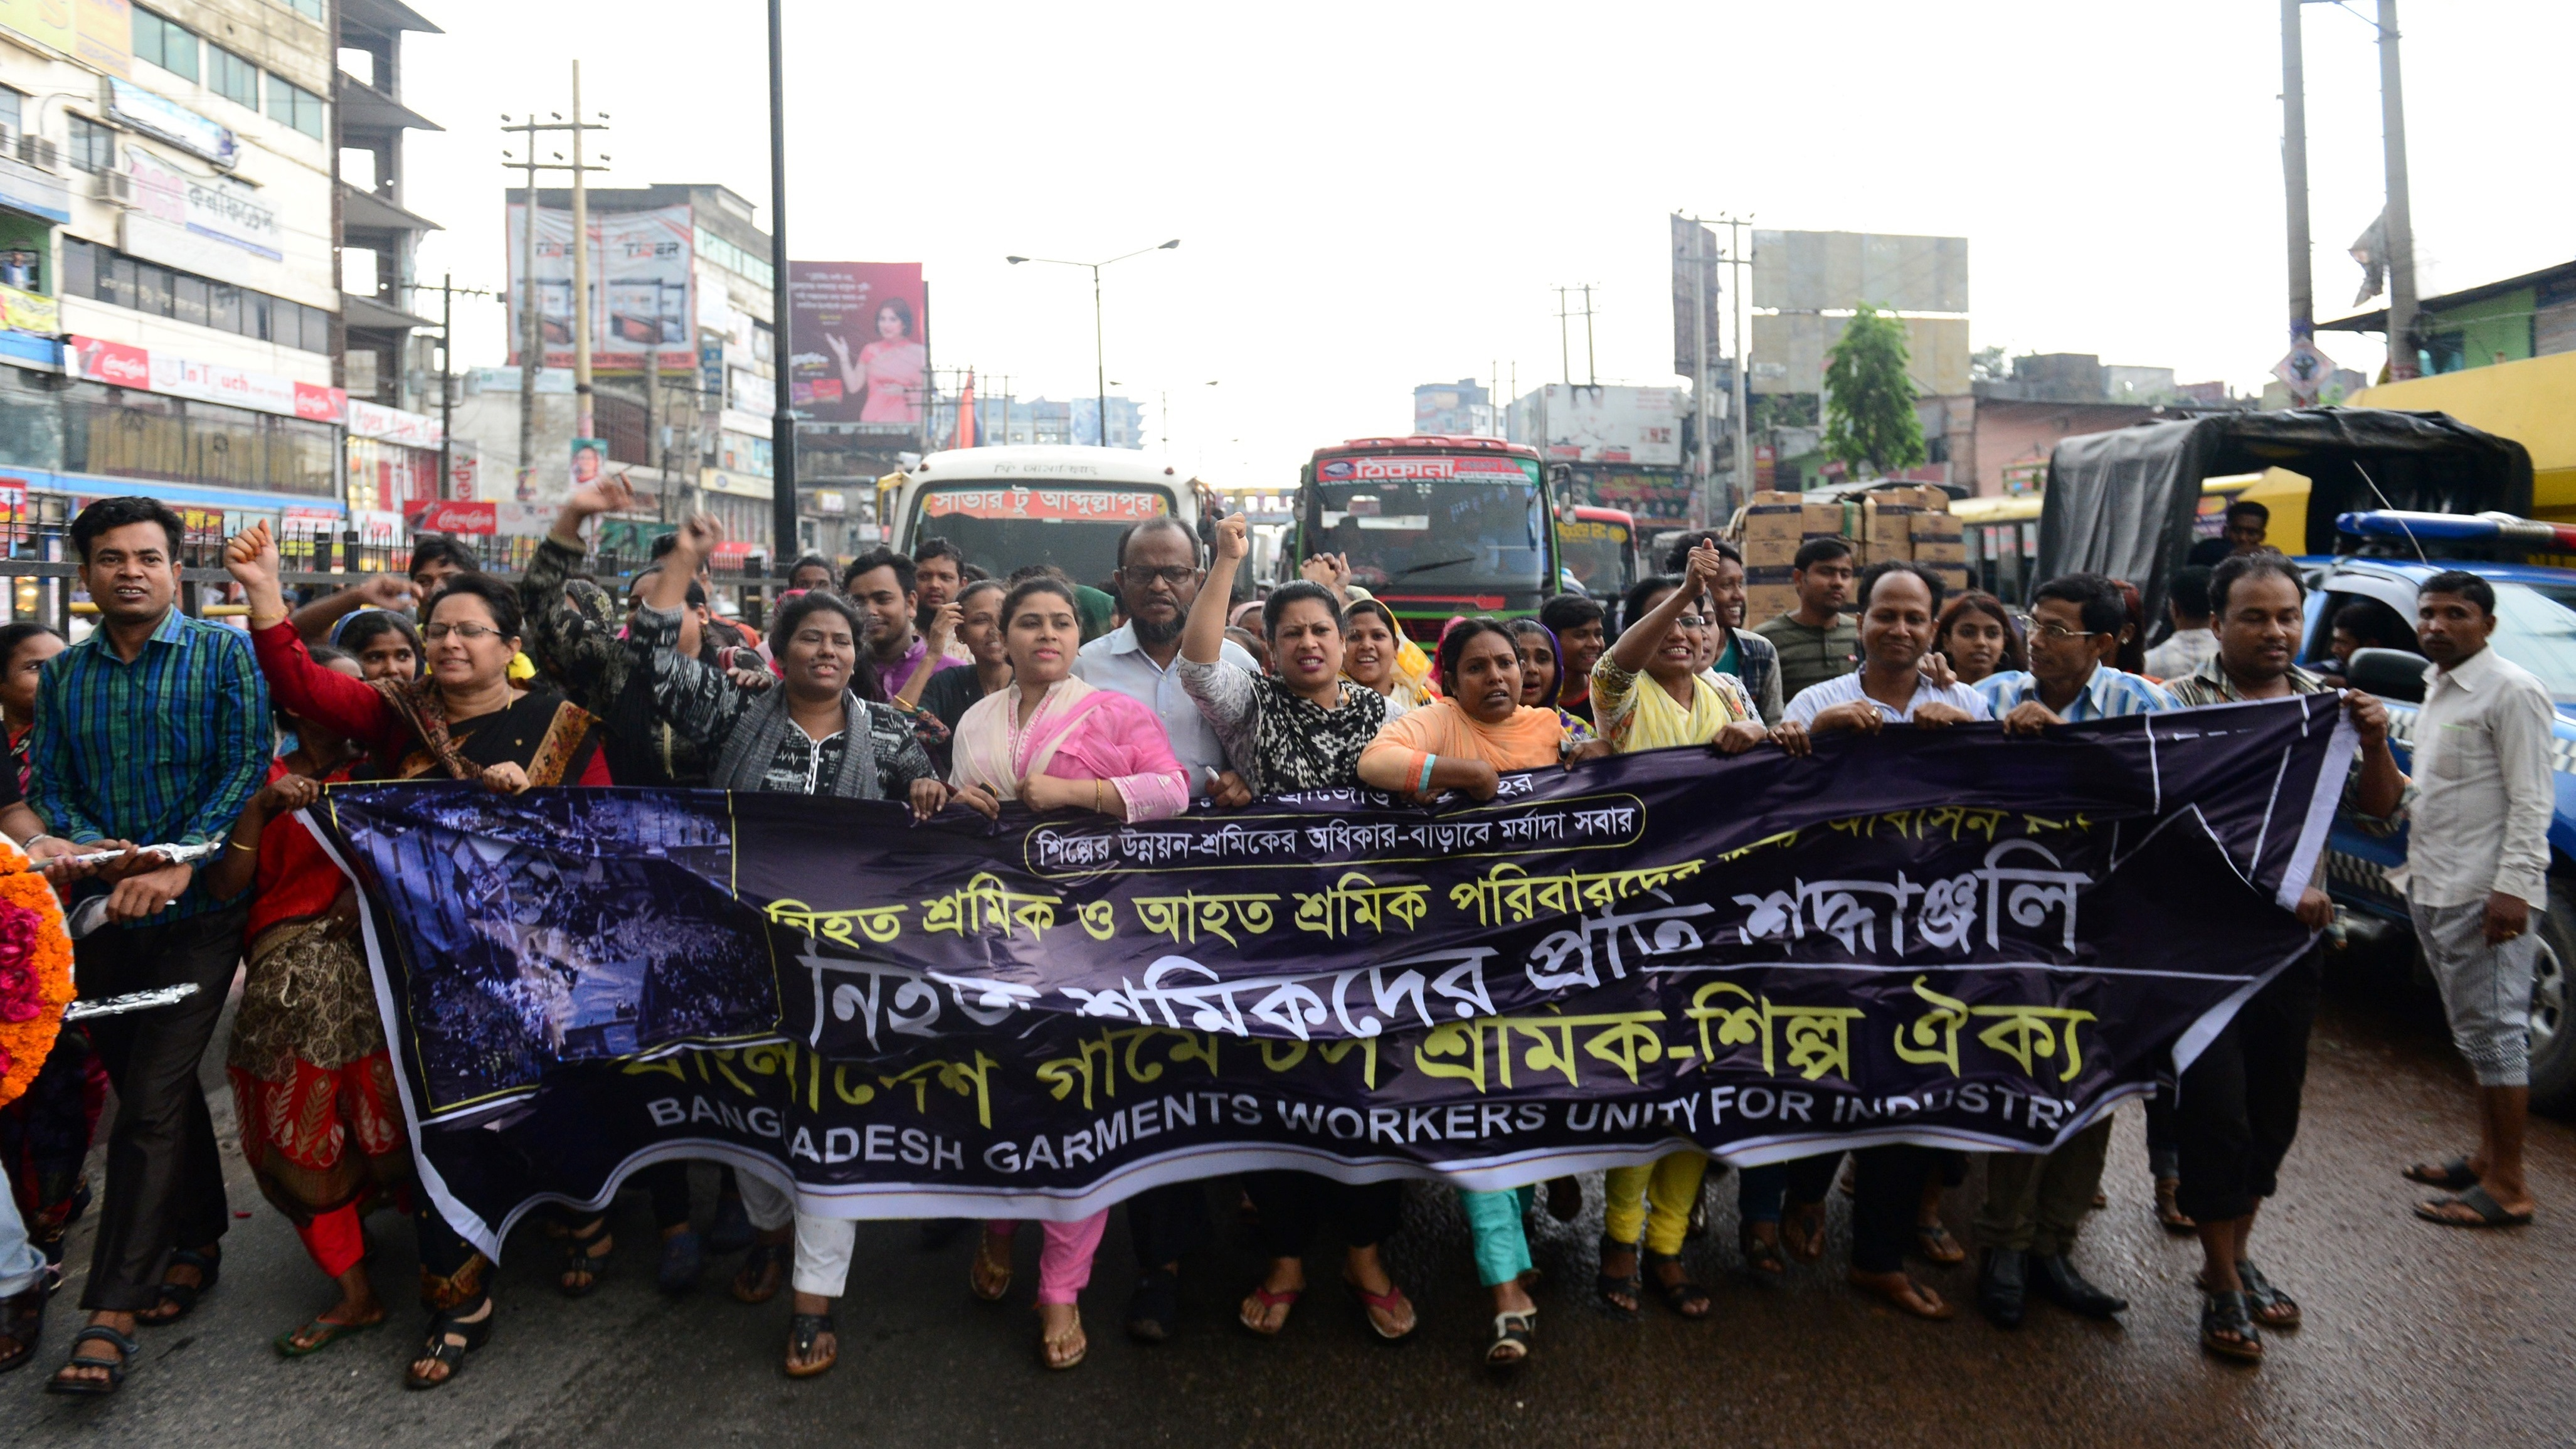 Bangladeshi activists mark the fourth anniversary of the Rana Plaza building collapse at the site where the building once stood in Savar, on the outskirts of Dhaka, on April 24.